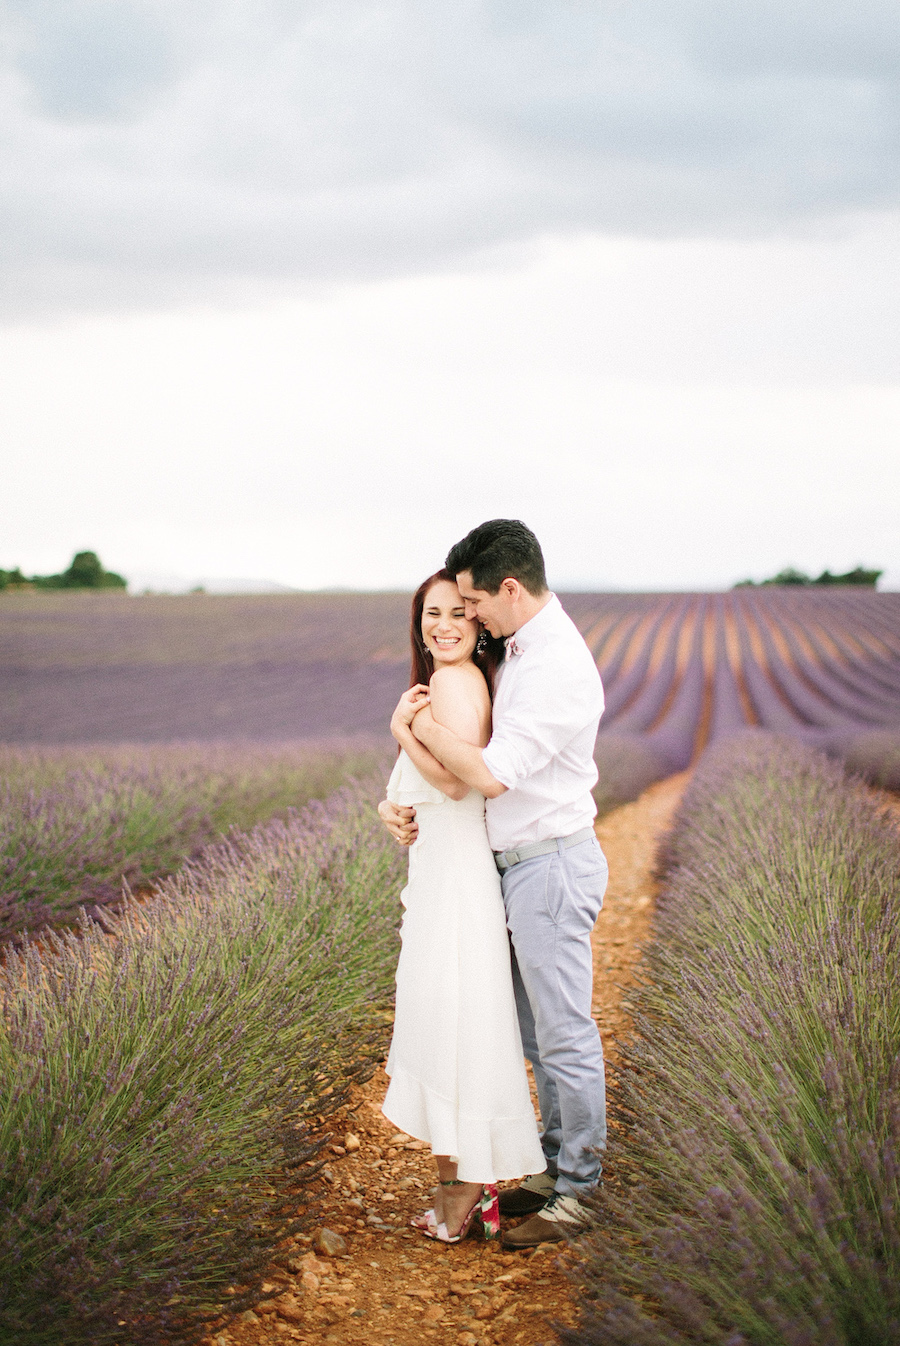 saya-photography-pre-wedding-provence-lavander-field-46.jpg